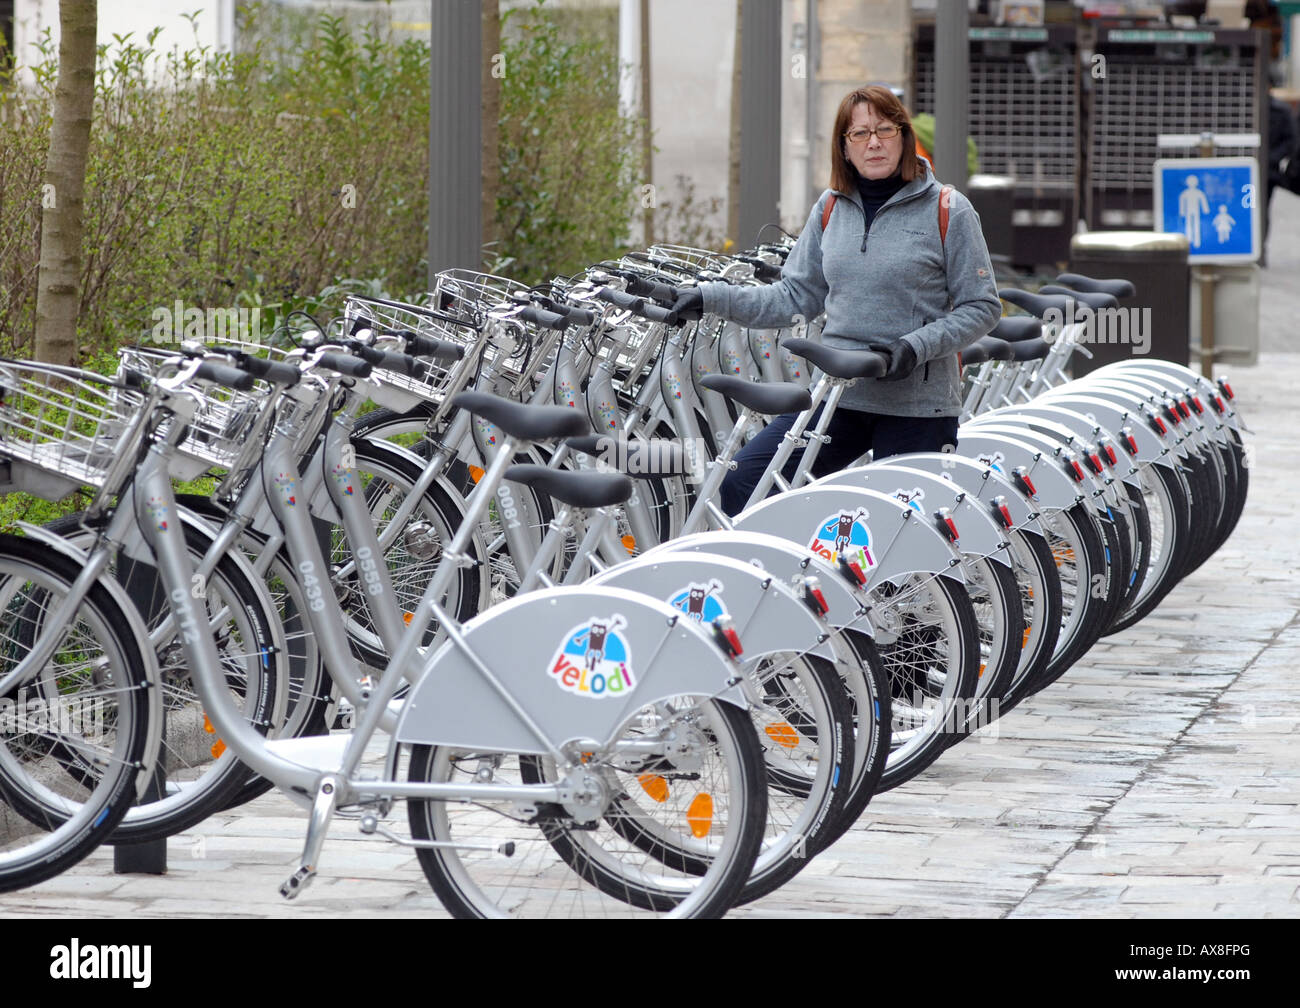 A woman hiring a bicycle in Dijon, Burgundy, France. - Stock Image